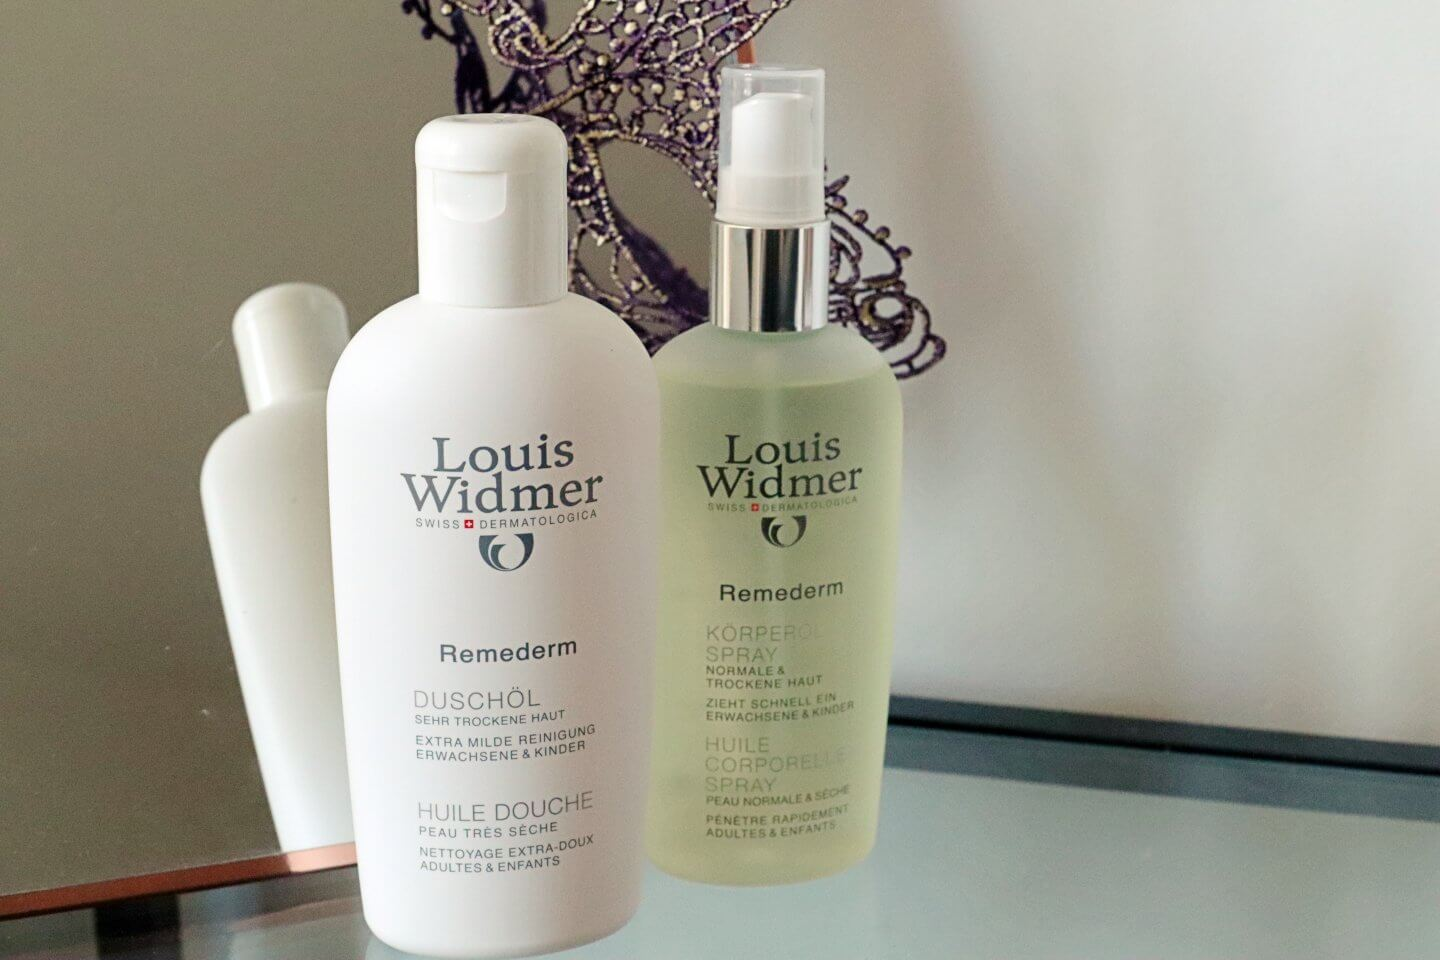 Entrepreneur writes about the new remederm Body oil and Shower oil from Louis Widmer